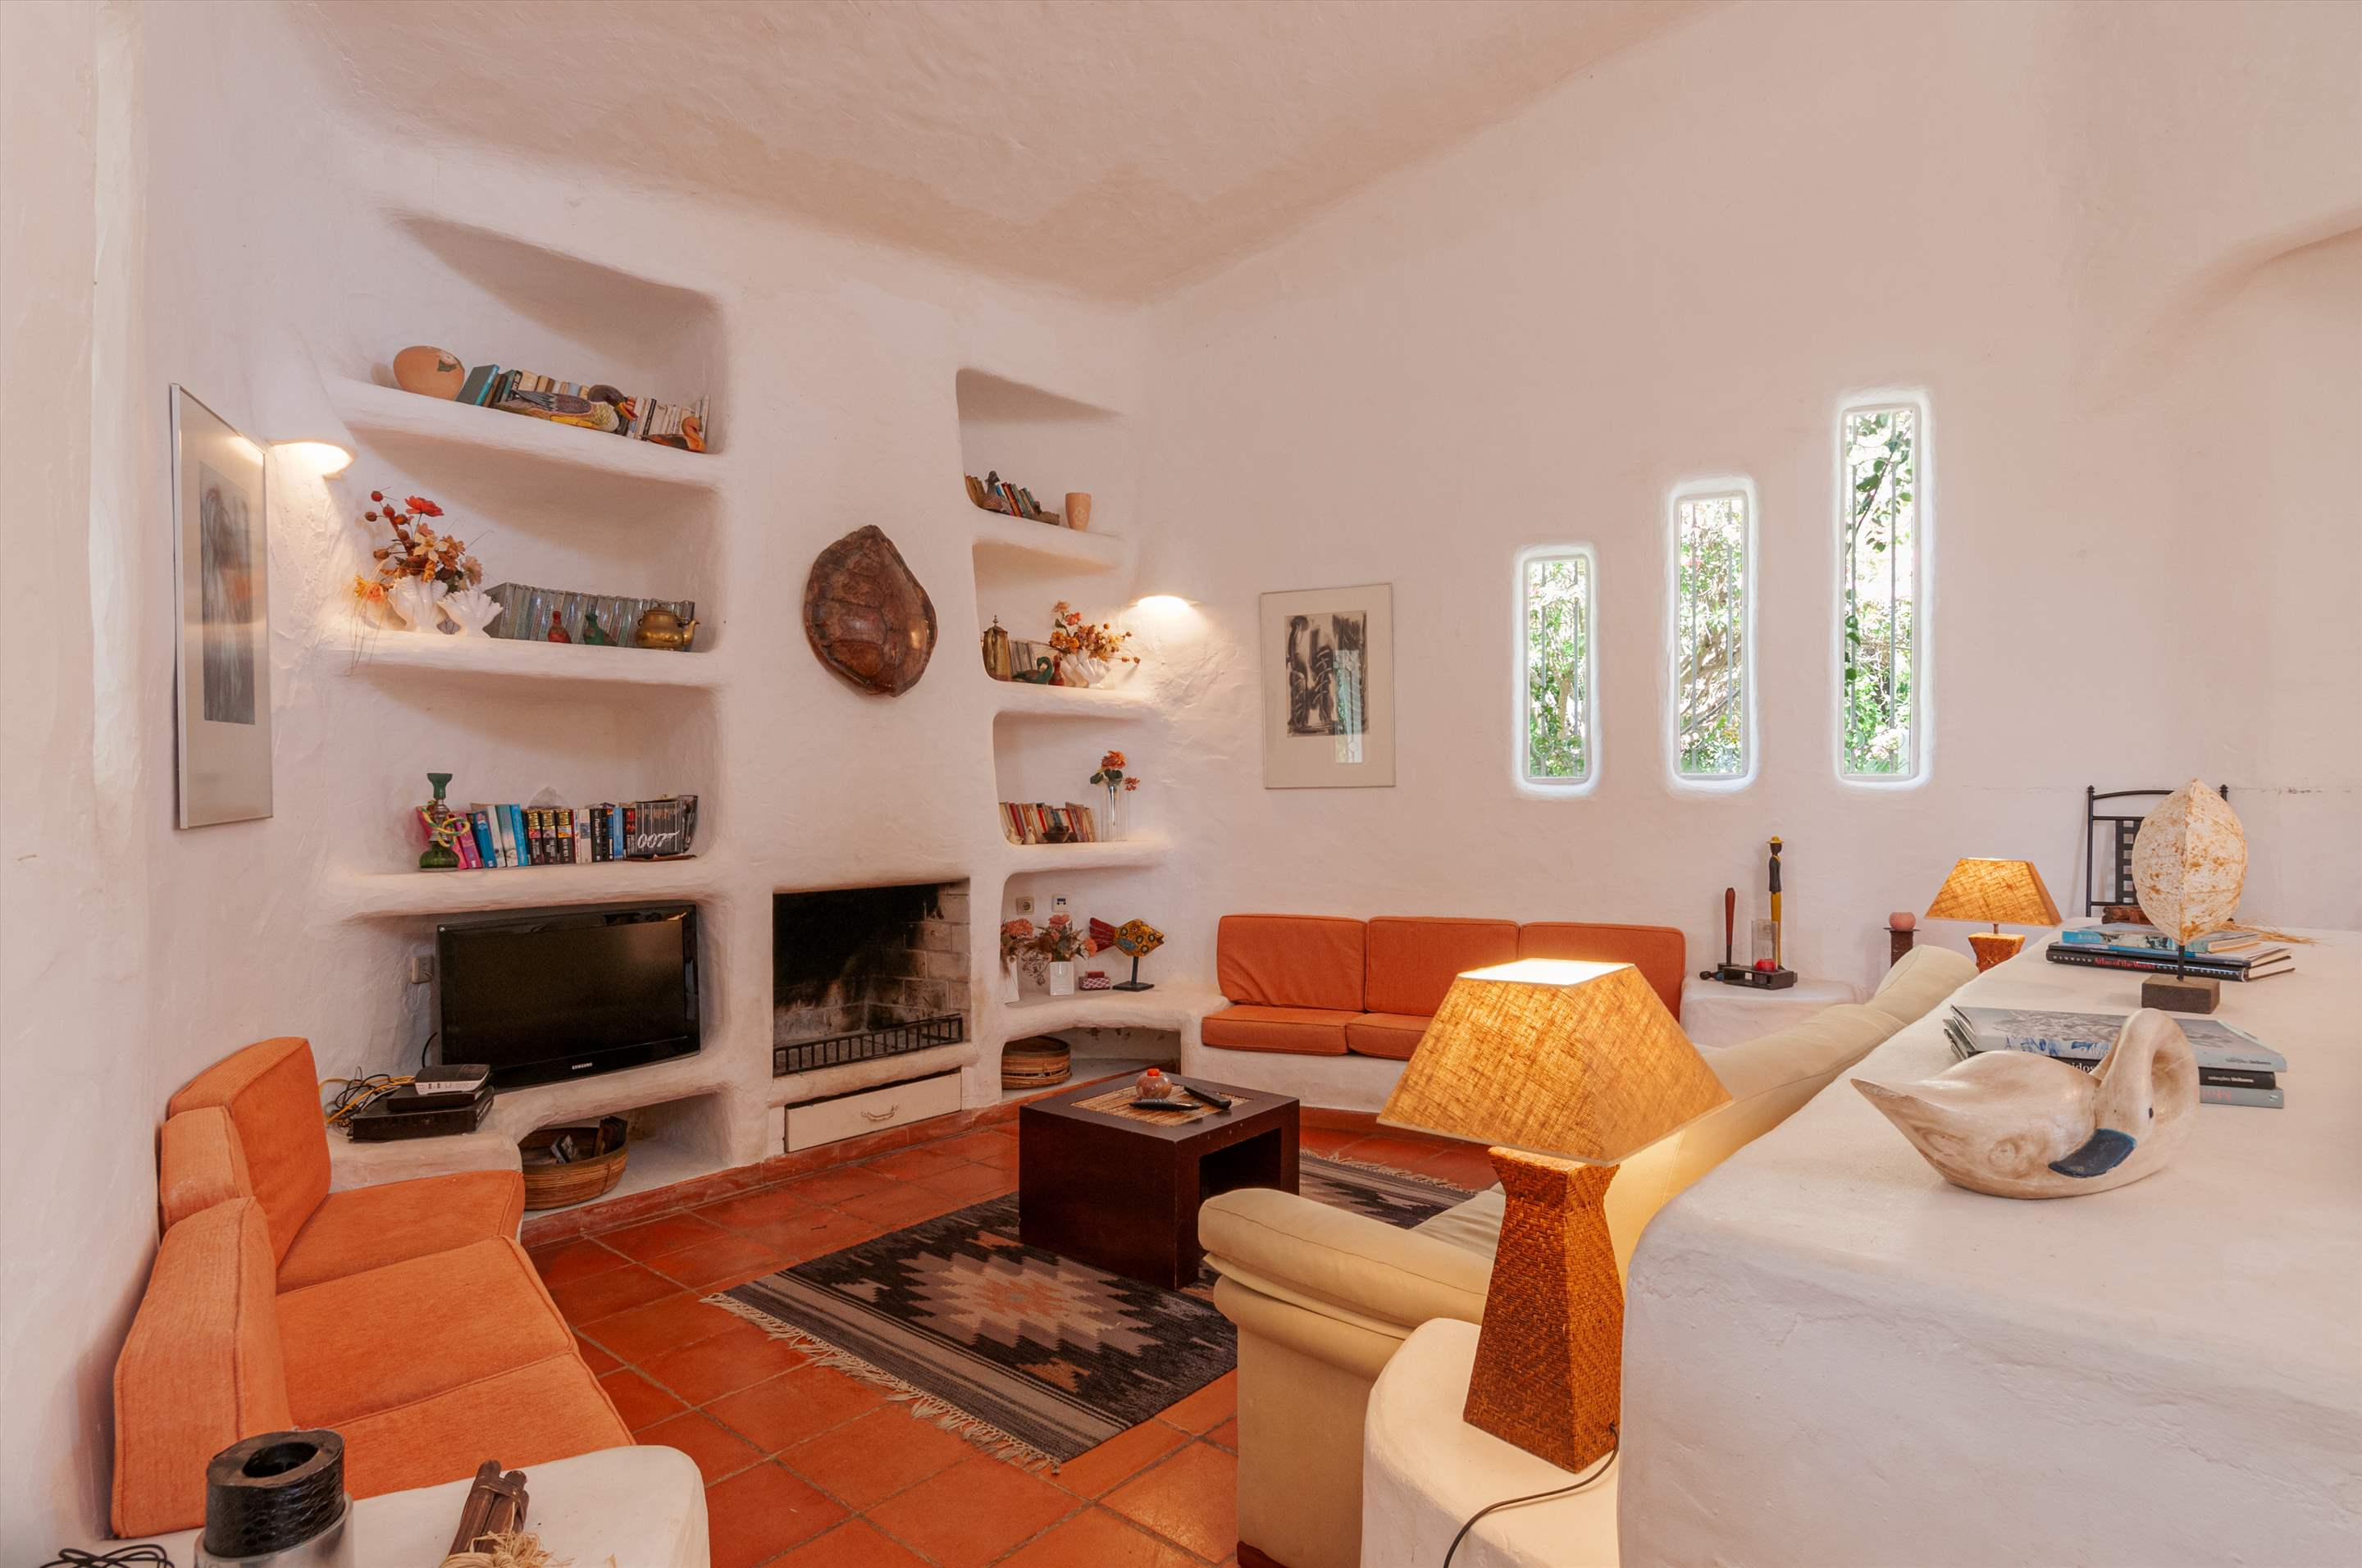 Casa do Pinhal, 4 bedroom villa in Vilamoura Area, Algarve Photo #7